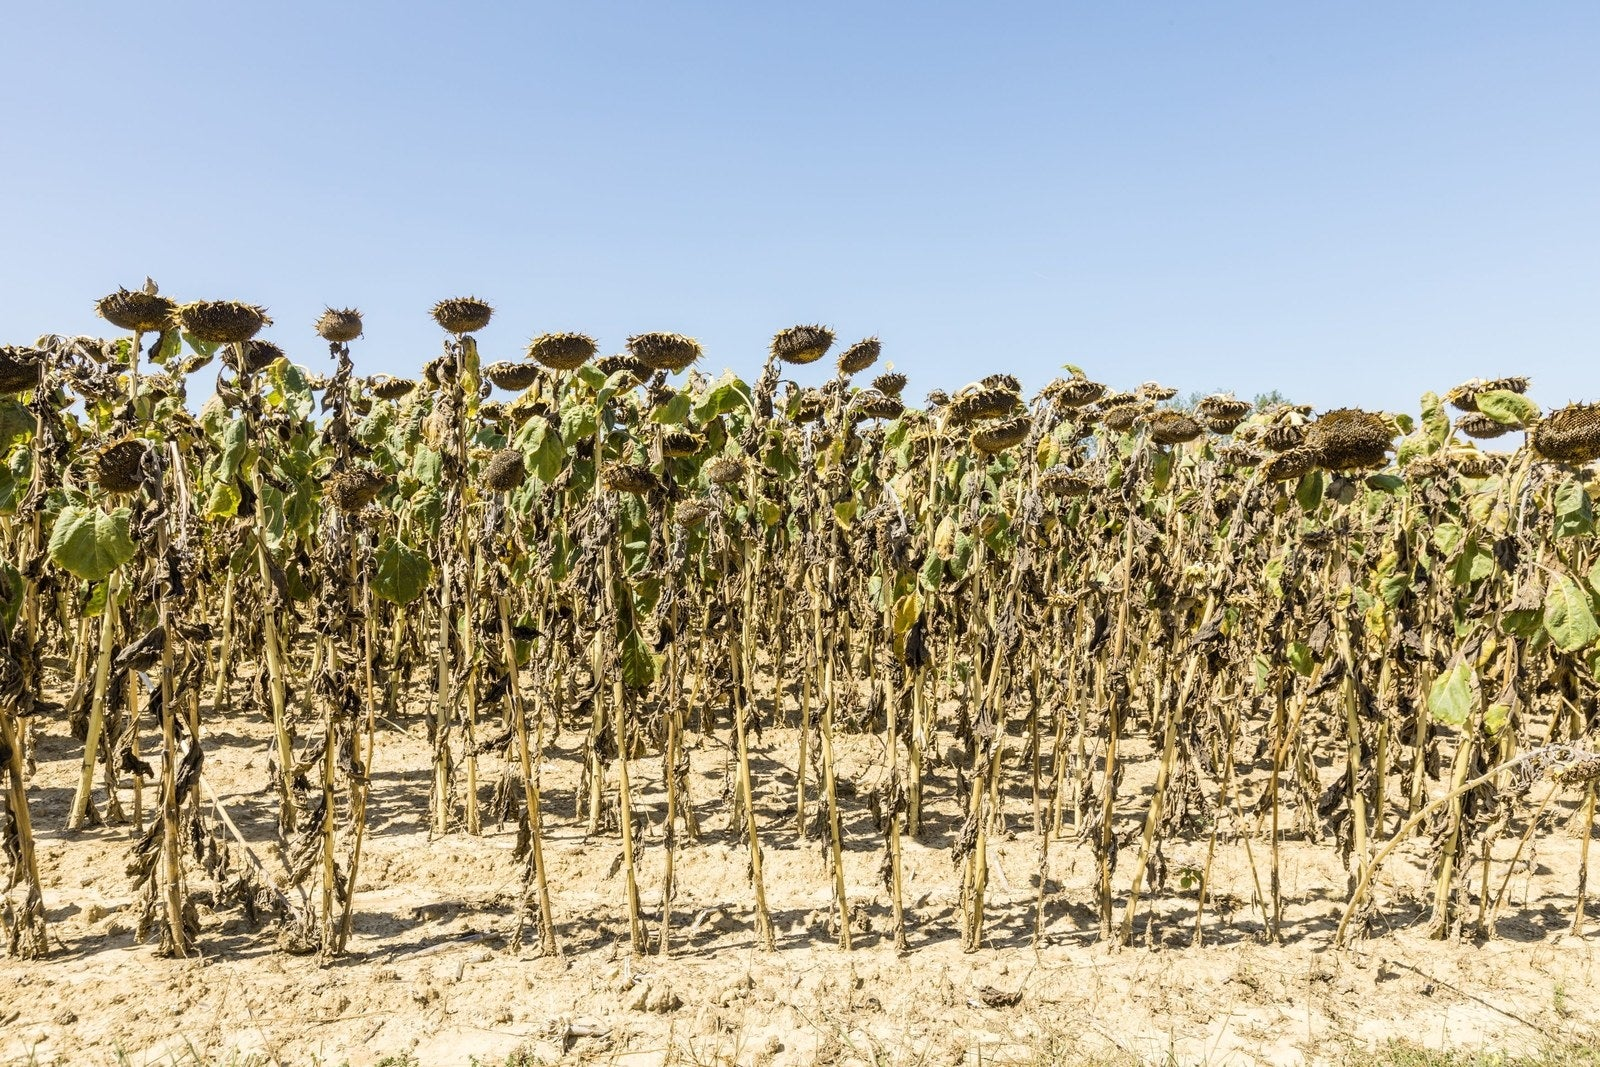 Dry sunflower plants in a field near Lyon, France, affected by drought during a heat wave on Aug. 20.